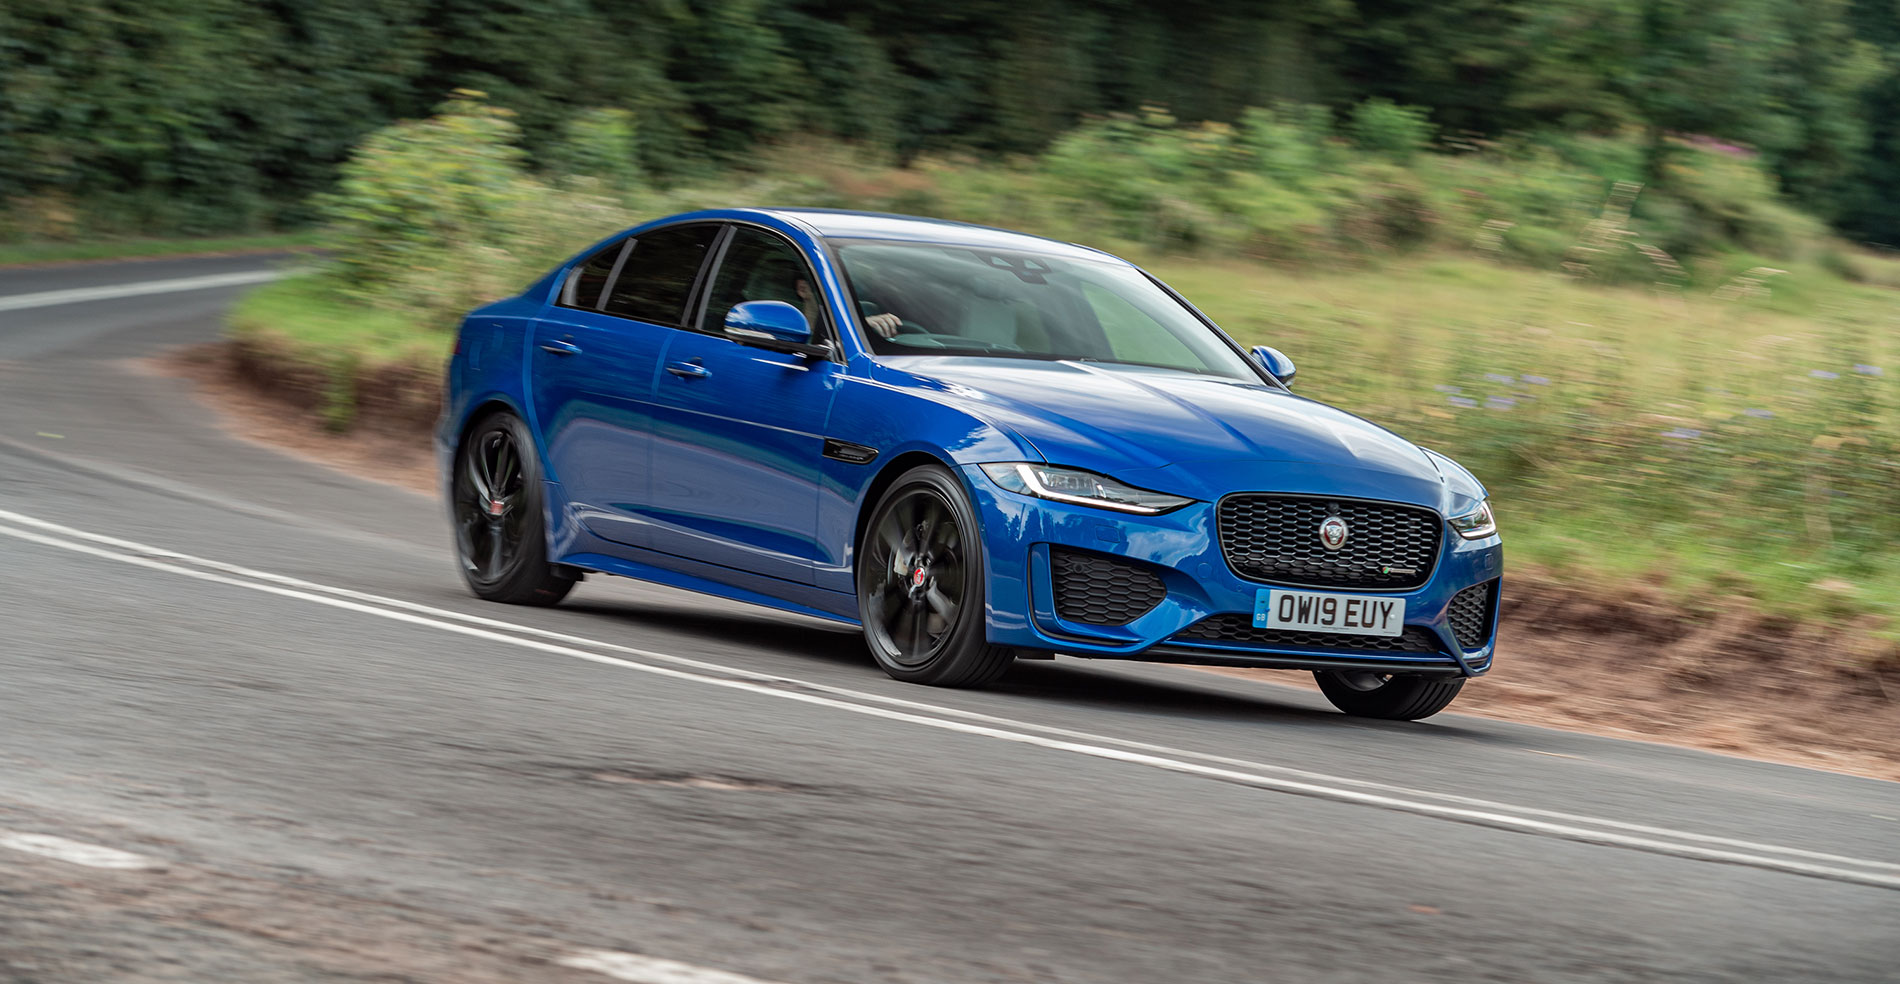 2020 Jaguar Xe Test Drive The Car Expert